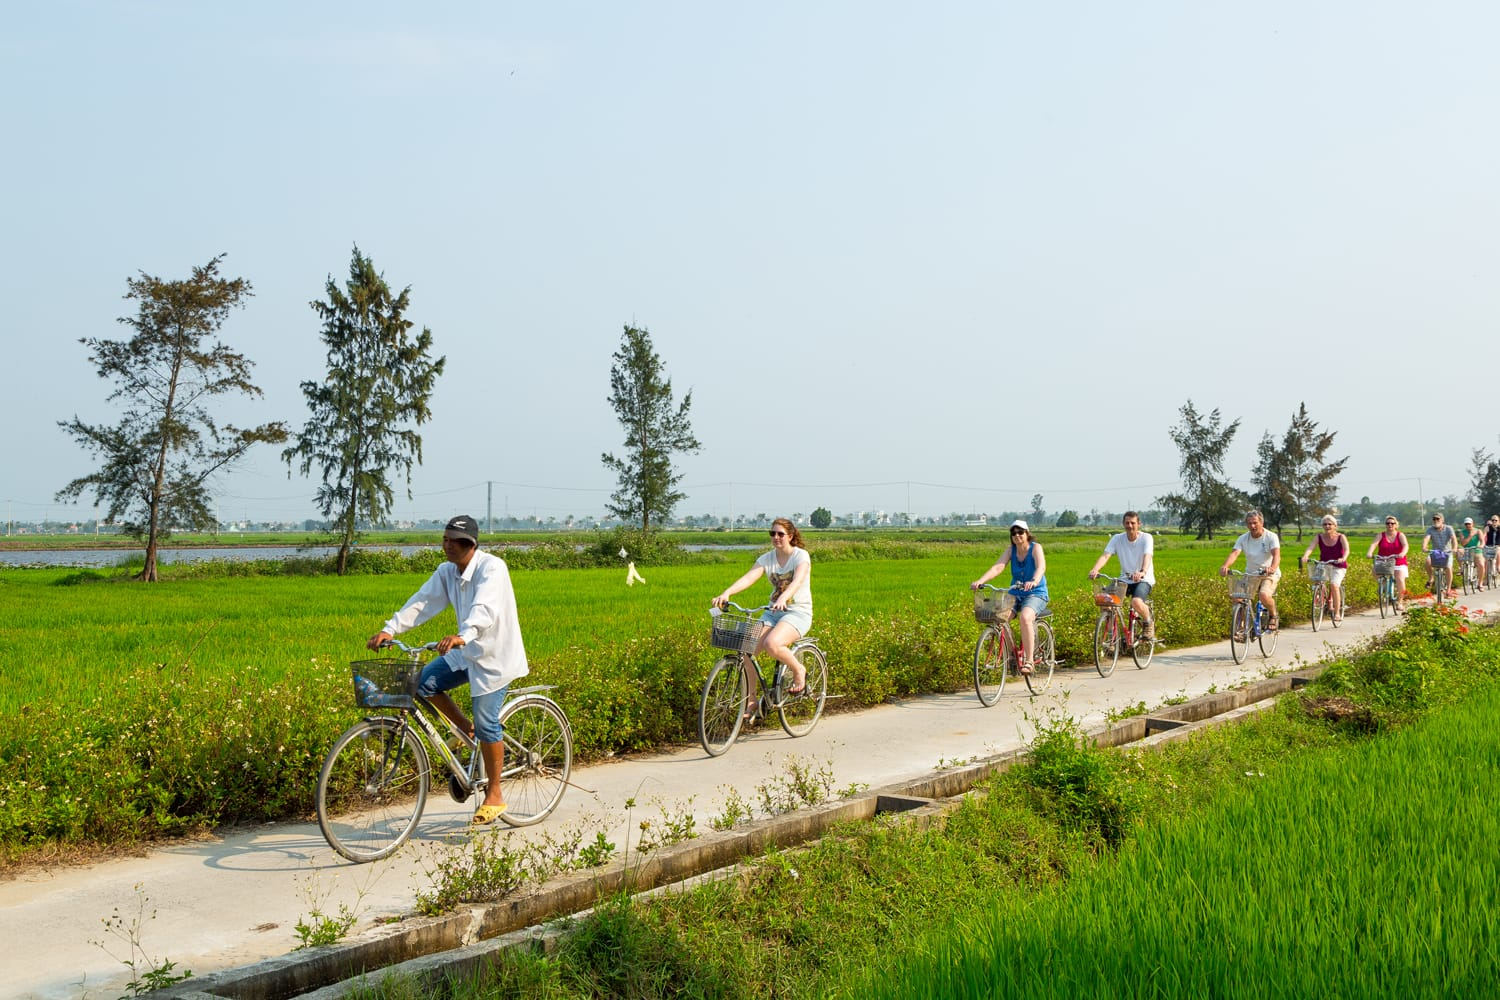 Tourists ride bicycles through rice paddies behind their guide in Hoi An, Vietnan